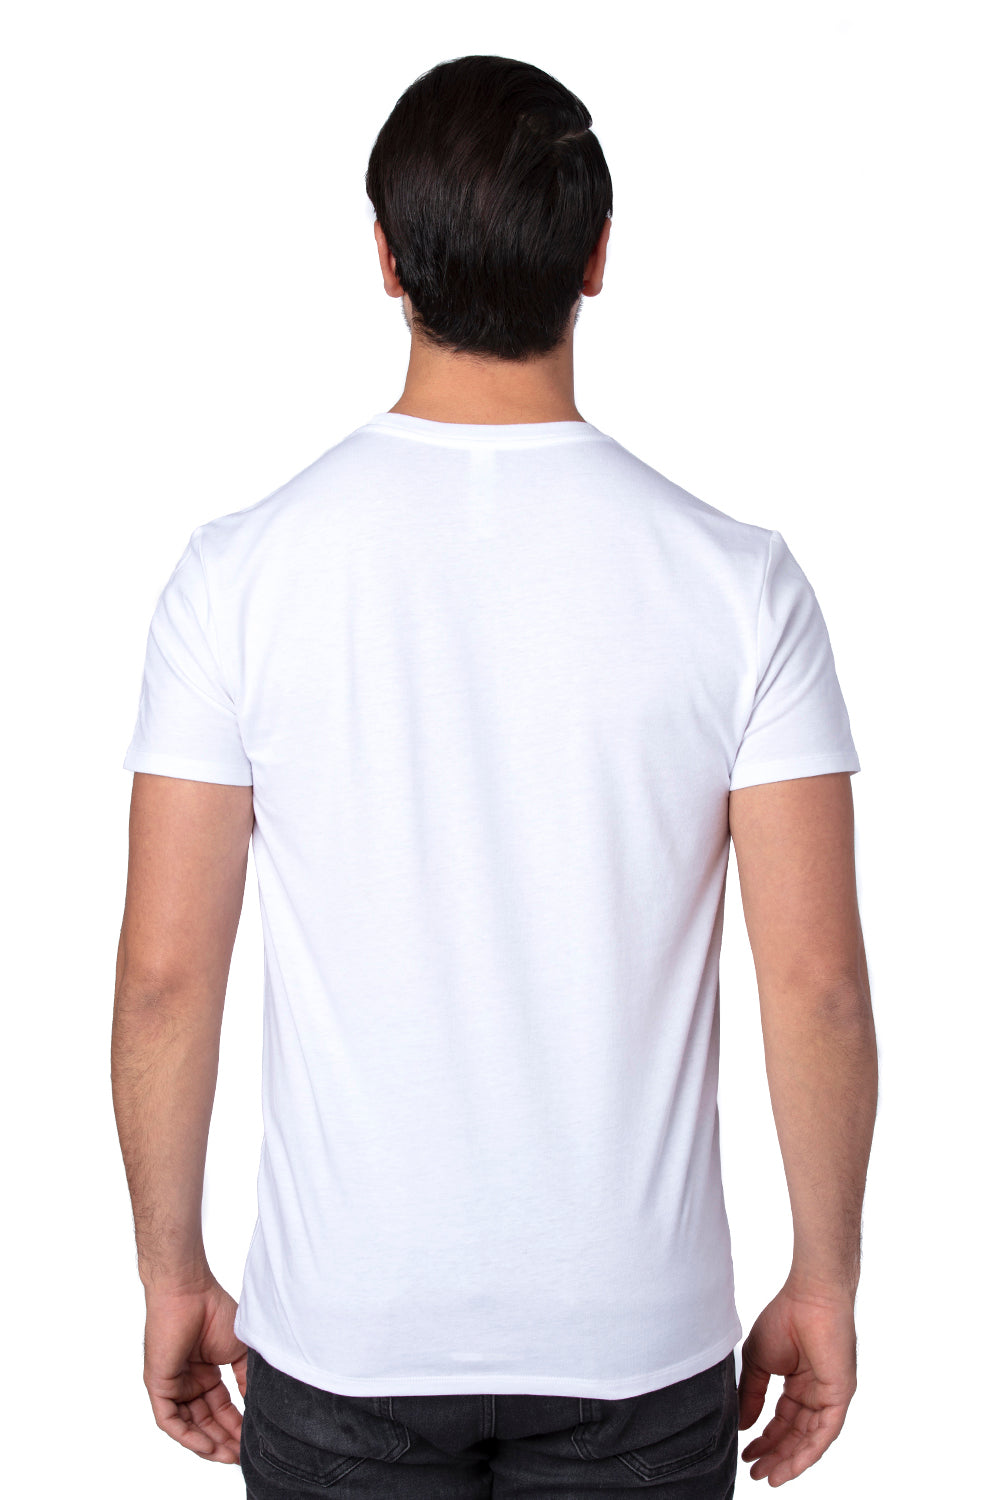 Threadfast Apparel 100A Mens Ultimate Short Sleeve Crewneck T-Shirt RFID White Back